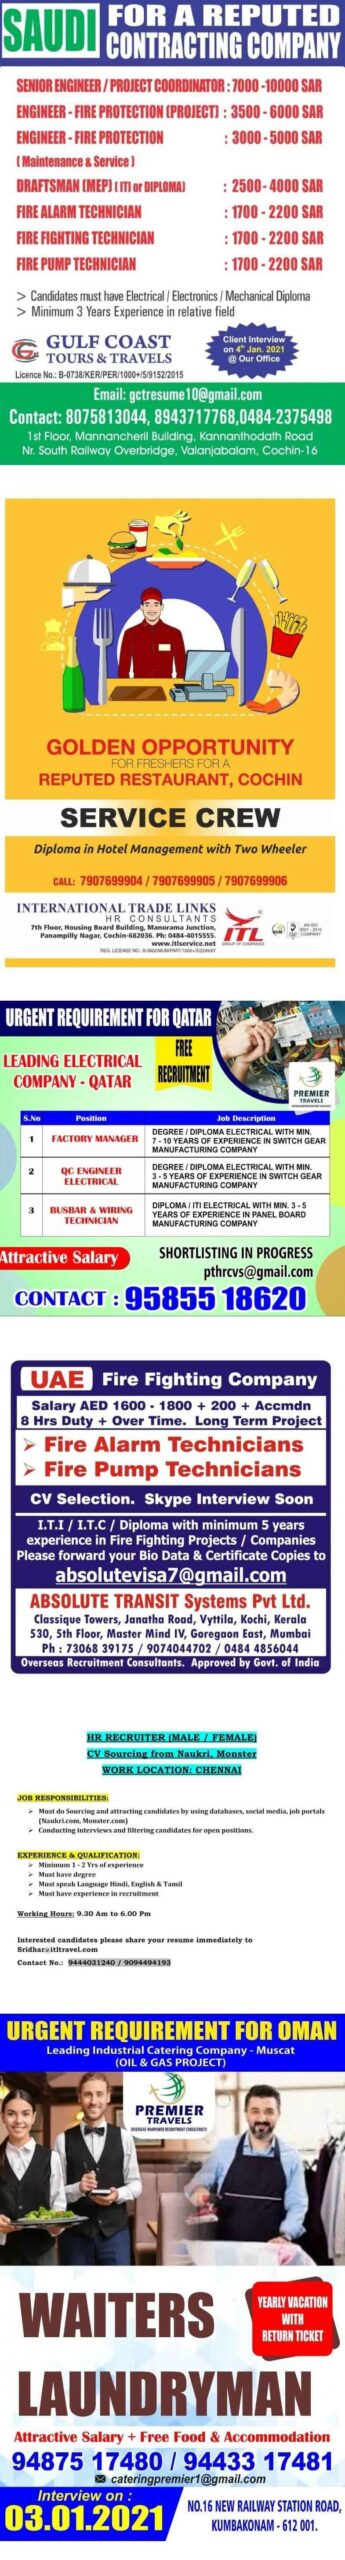 Overseas assignments India